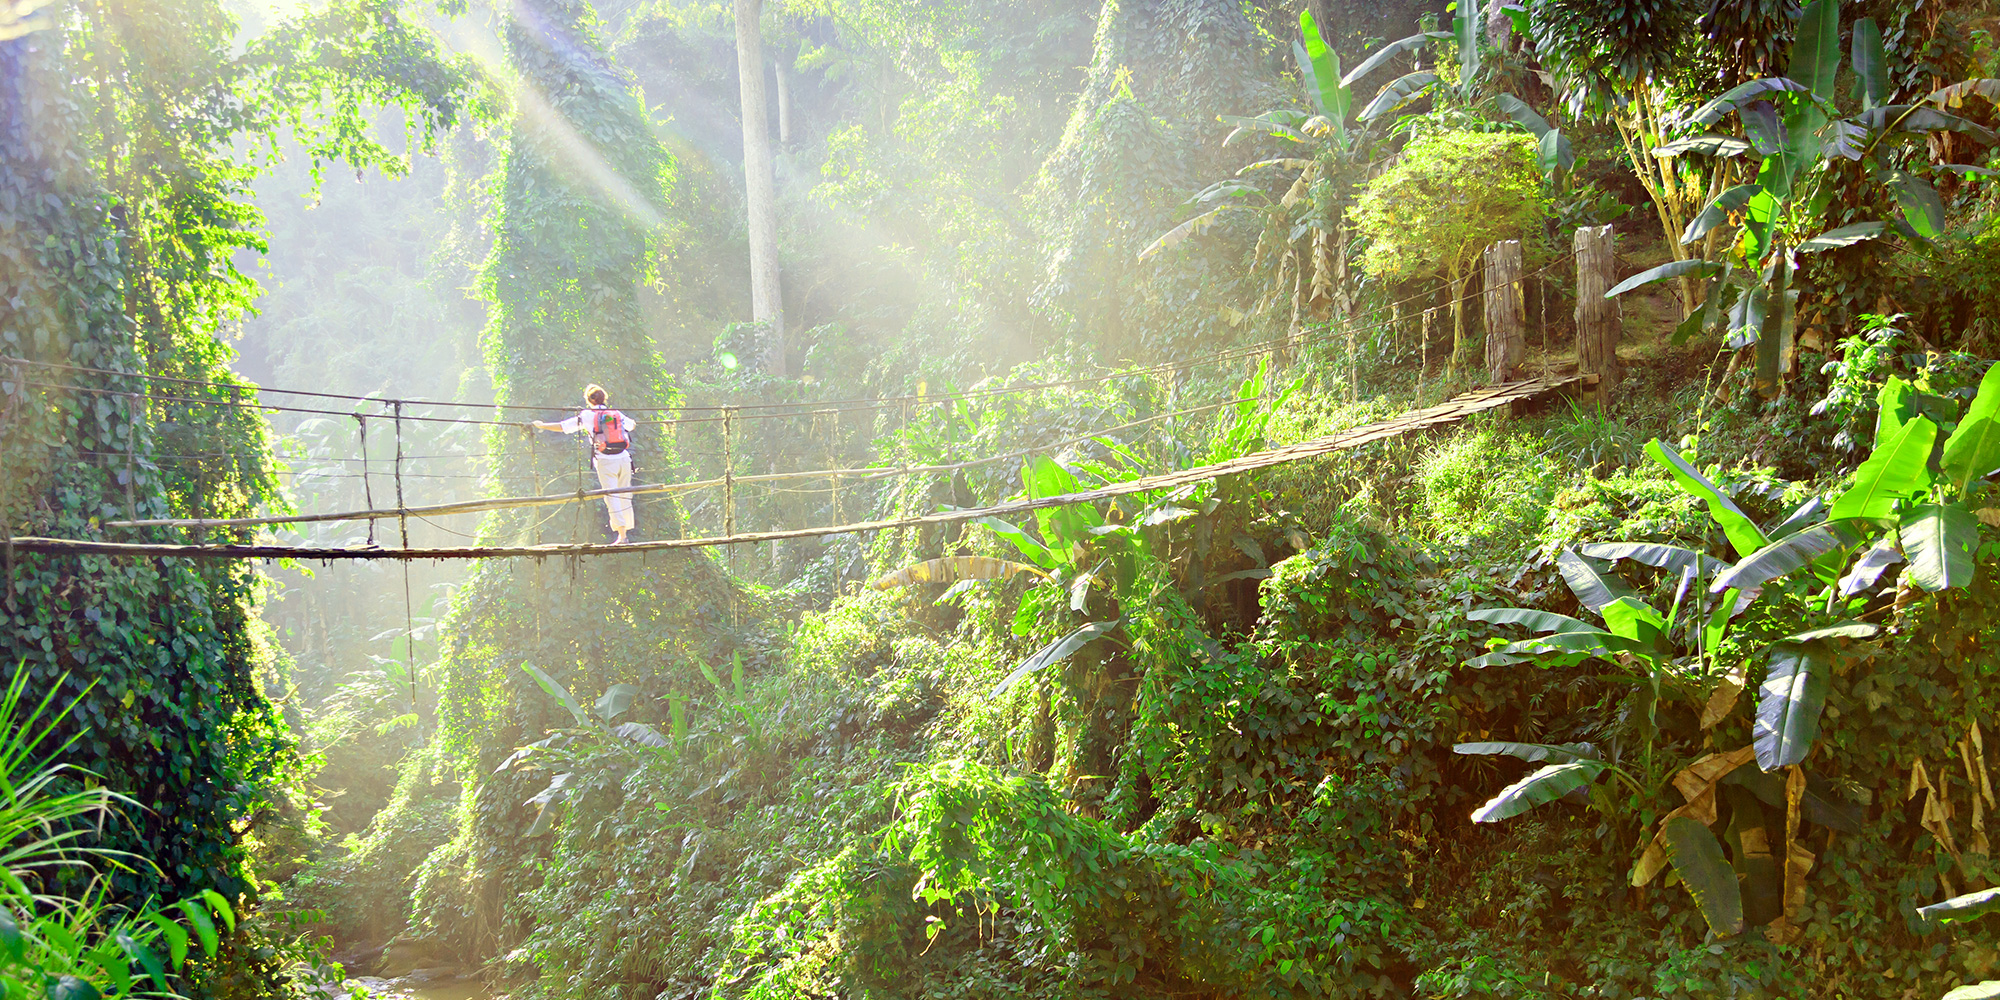 How to Leave No Trace in the Rainforest